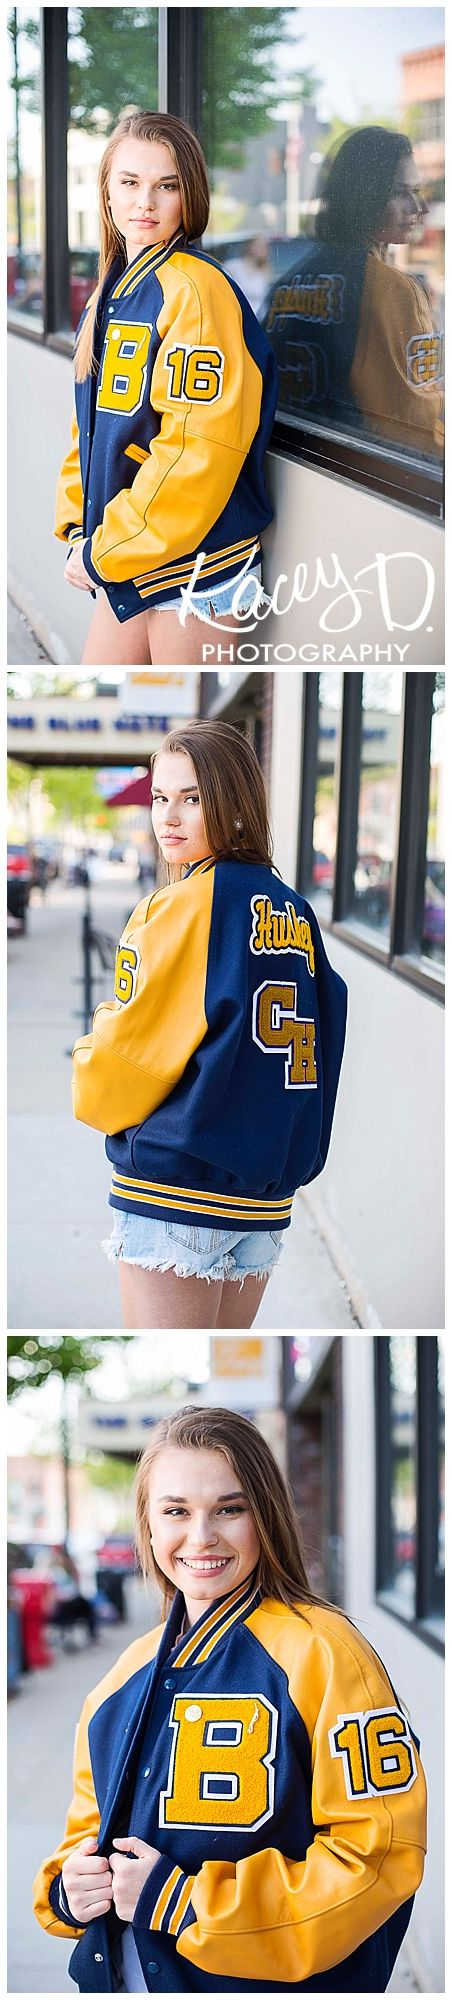 Letterman Jackets in Senior Portraits - Girls - Blue & Gold - Photographer Columbia, MO Senior Portraits Kacey D Photography